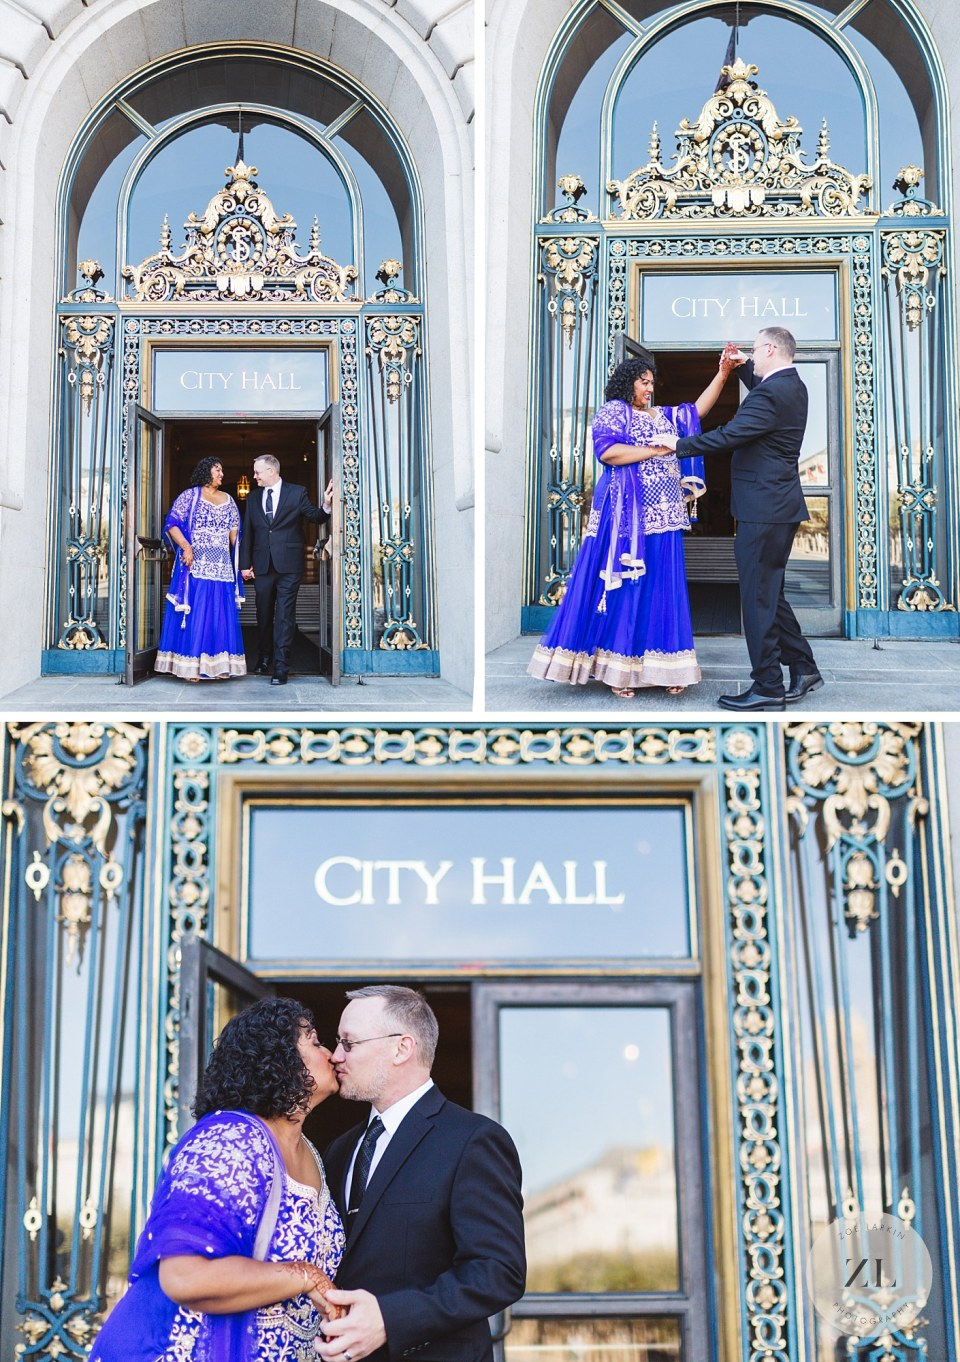 couple celebrating outside doors of city hall after wedding